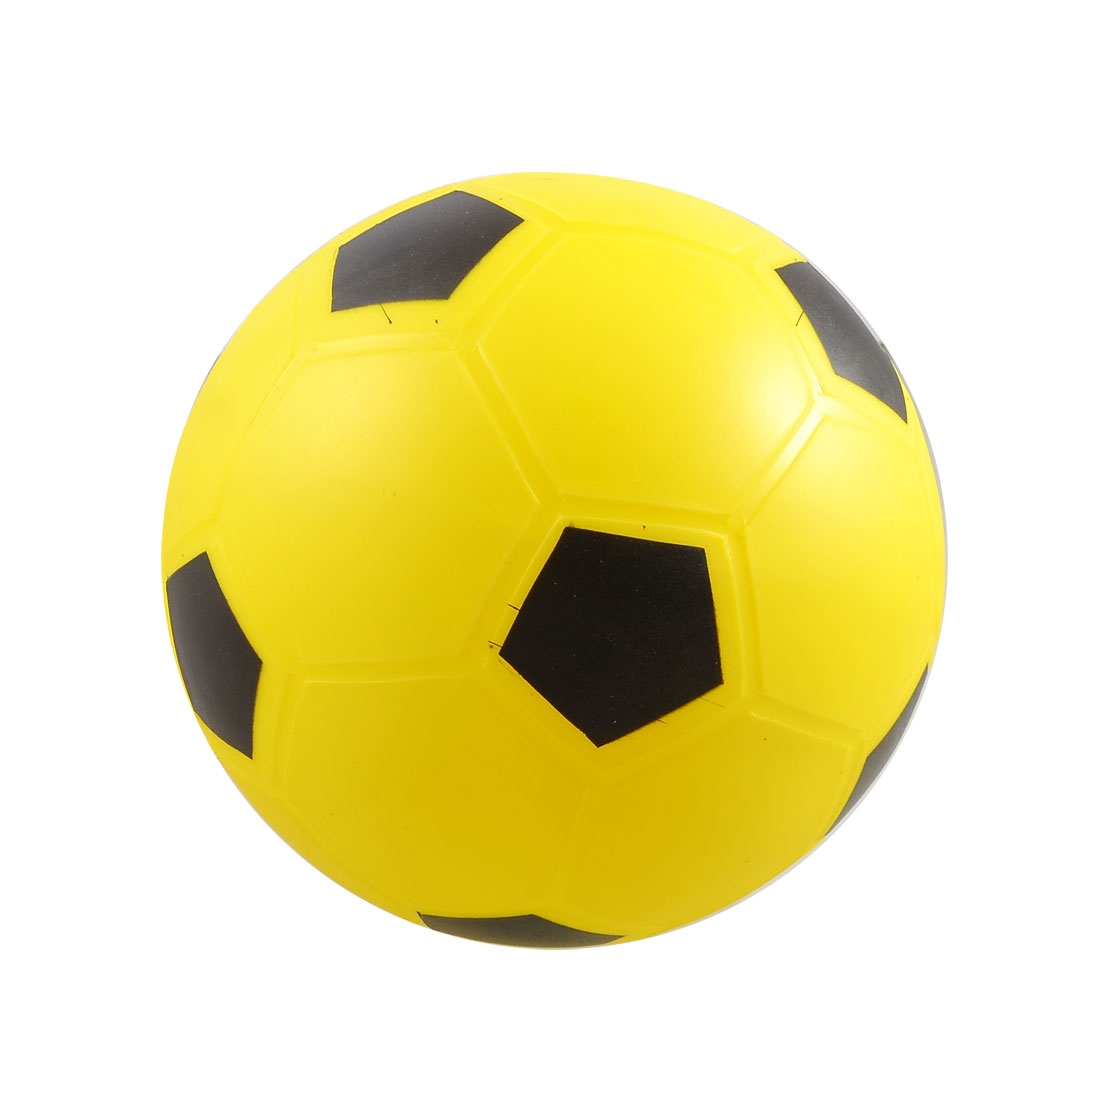 Yellow PVC Football Soccer Toy Plaything for Kids Children